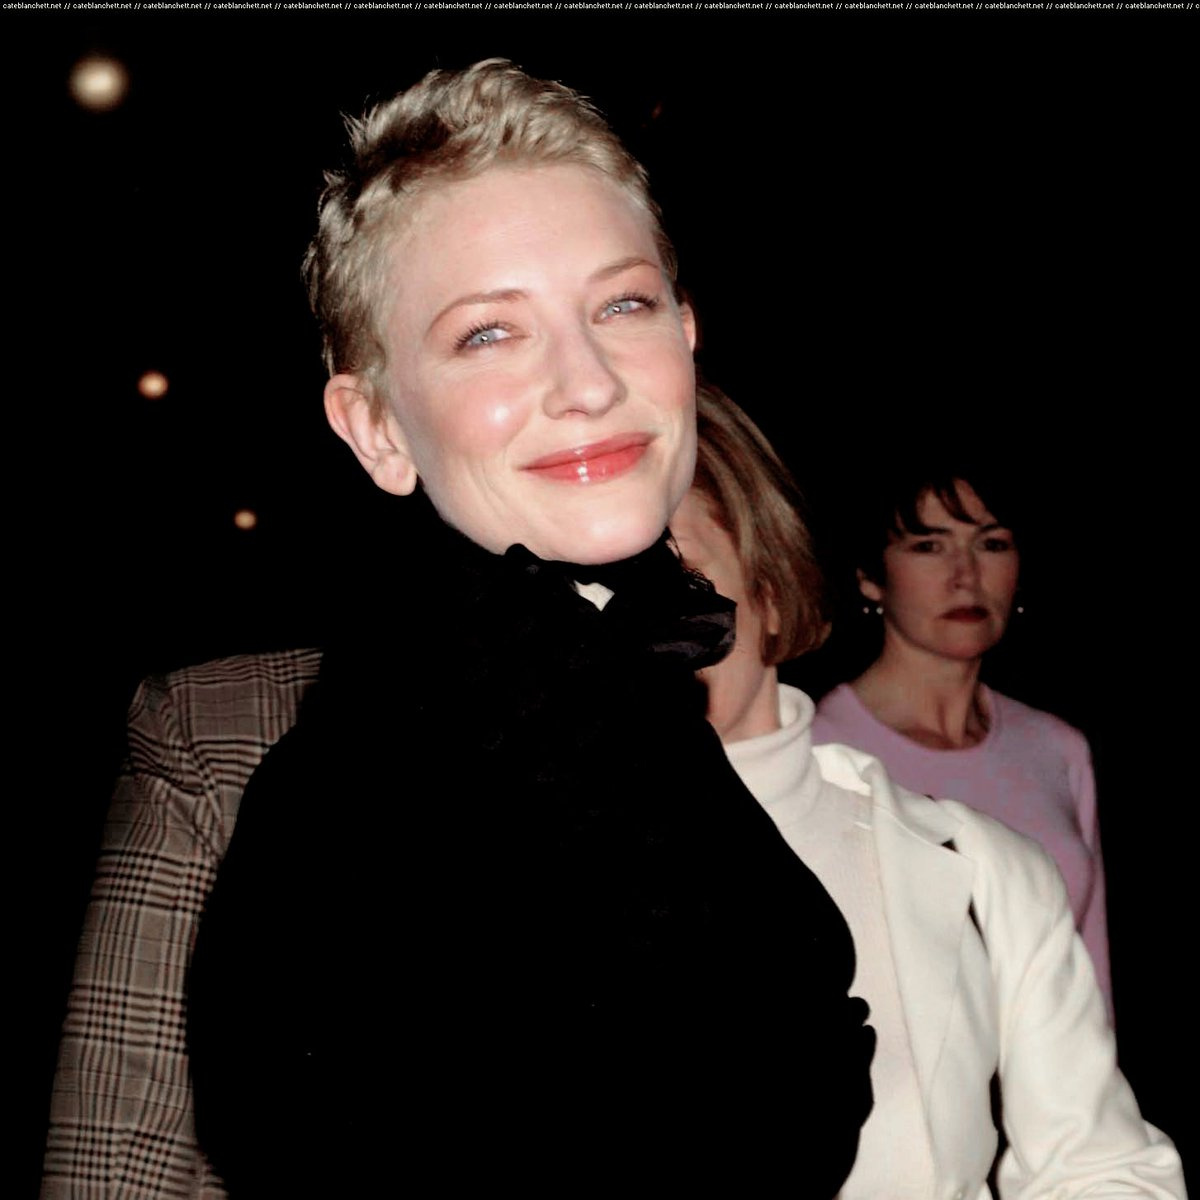 Best Of Cate Blanchett On Twitter Cate Blanchett With Short Hair Will Always Be One Of The Most Precious Things Ever